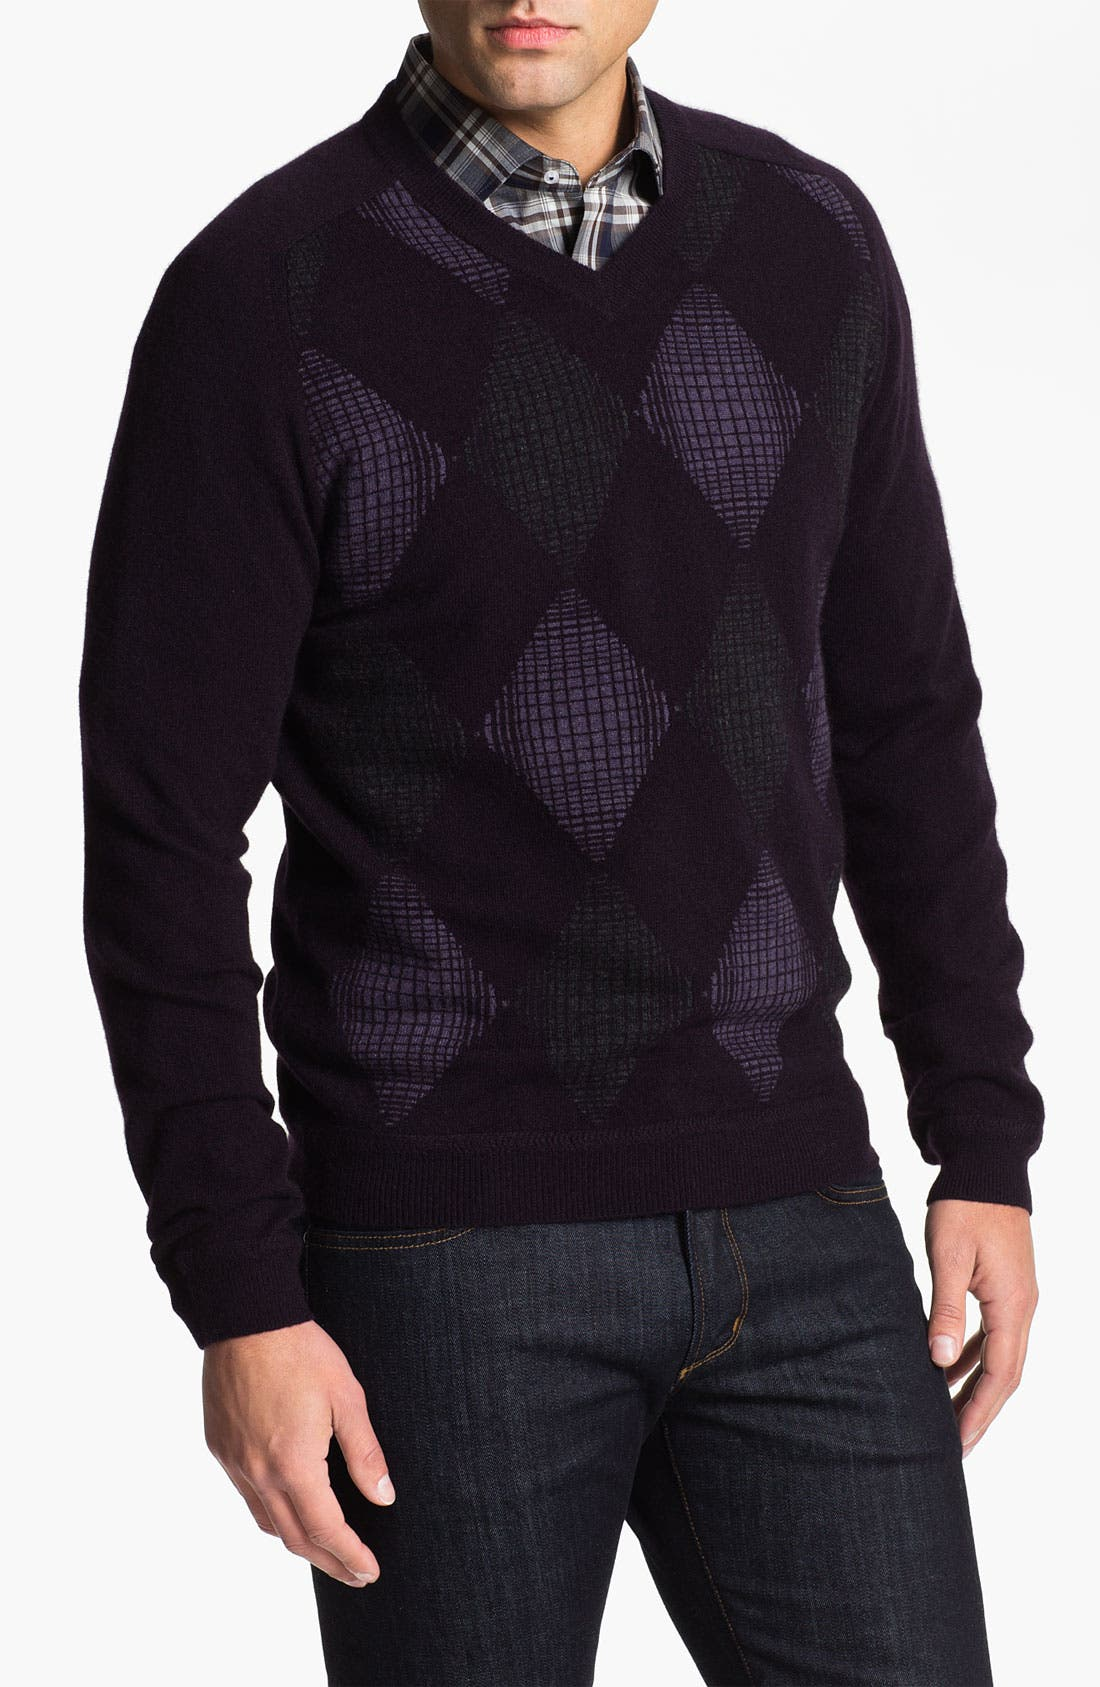 Alternate Image 1 Selected - John W. Nordstrom® Cashmere V-Neck Sweater